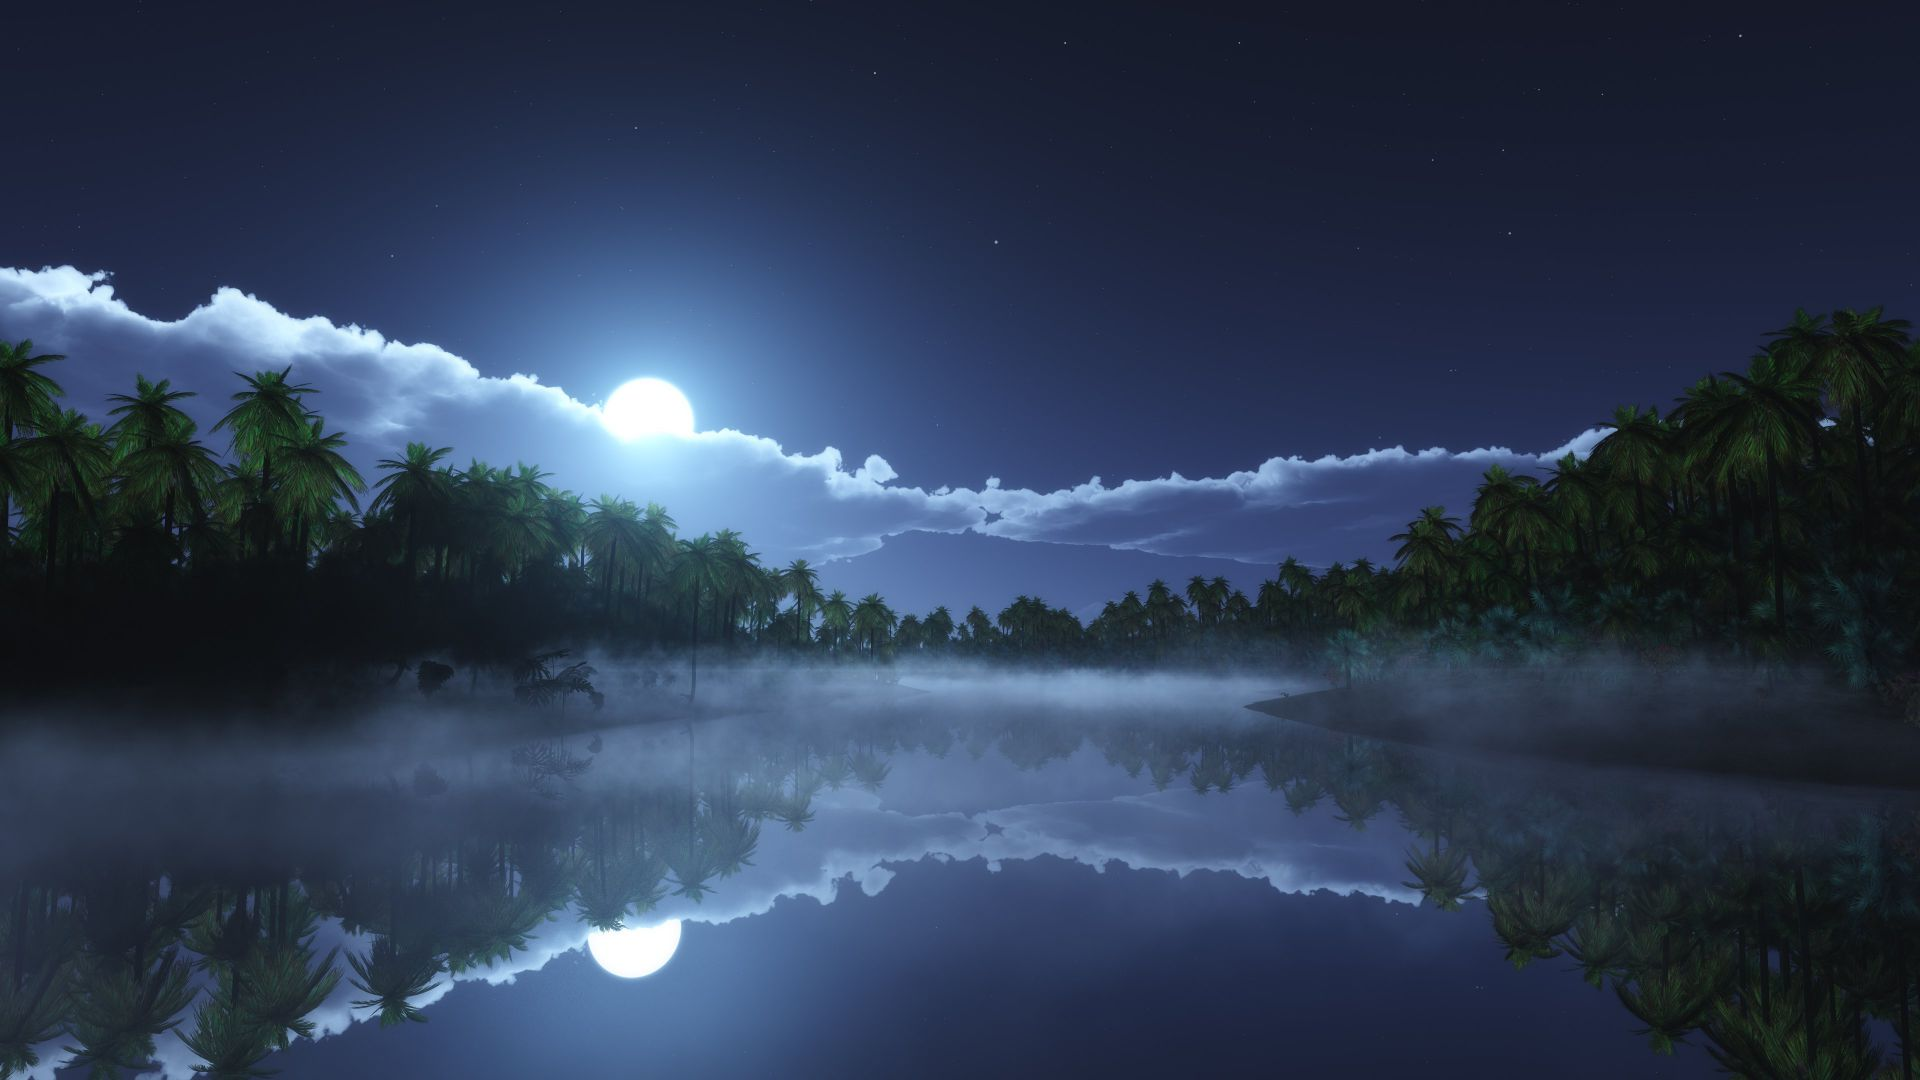 River, 4k, HD wallpaper, sea, palms, night, moon, ...